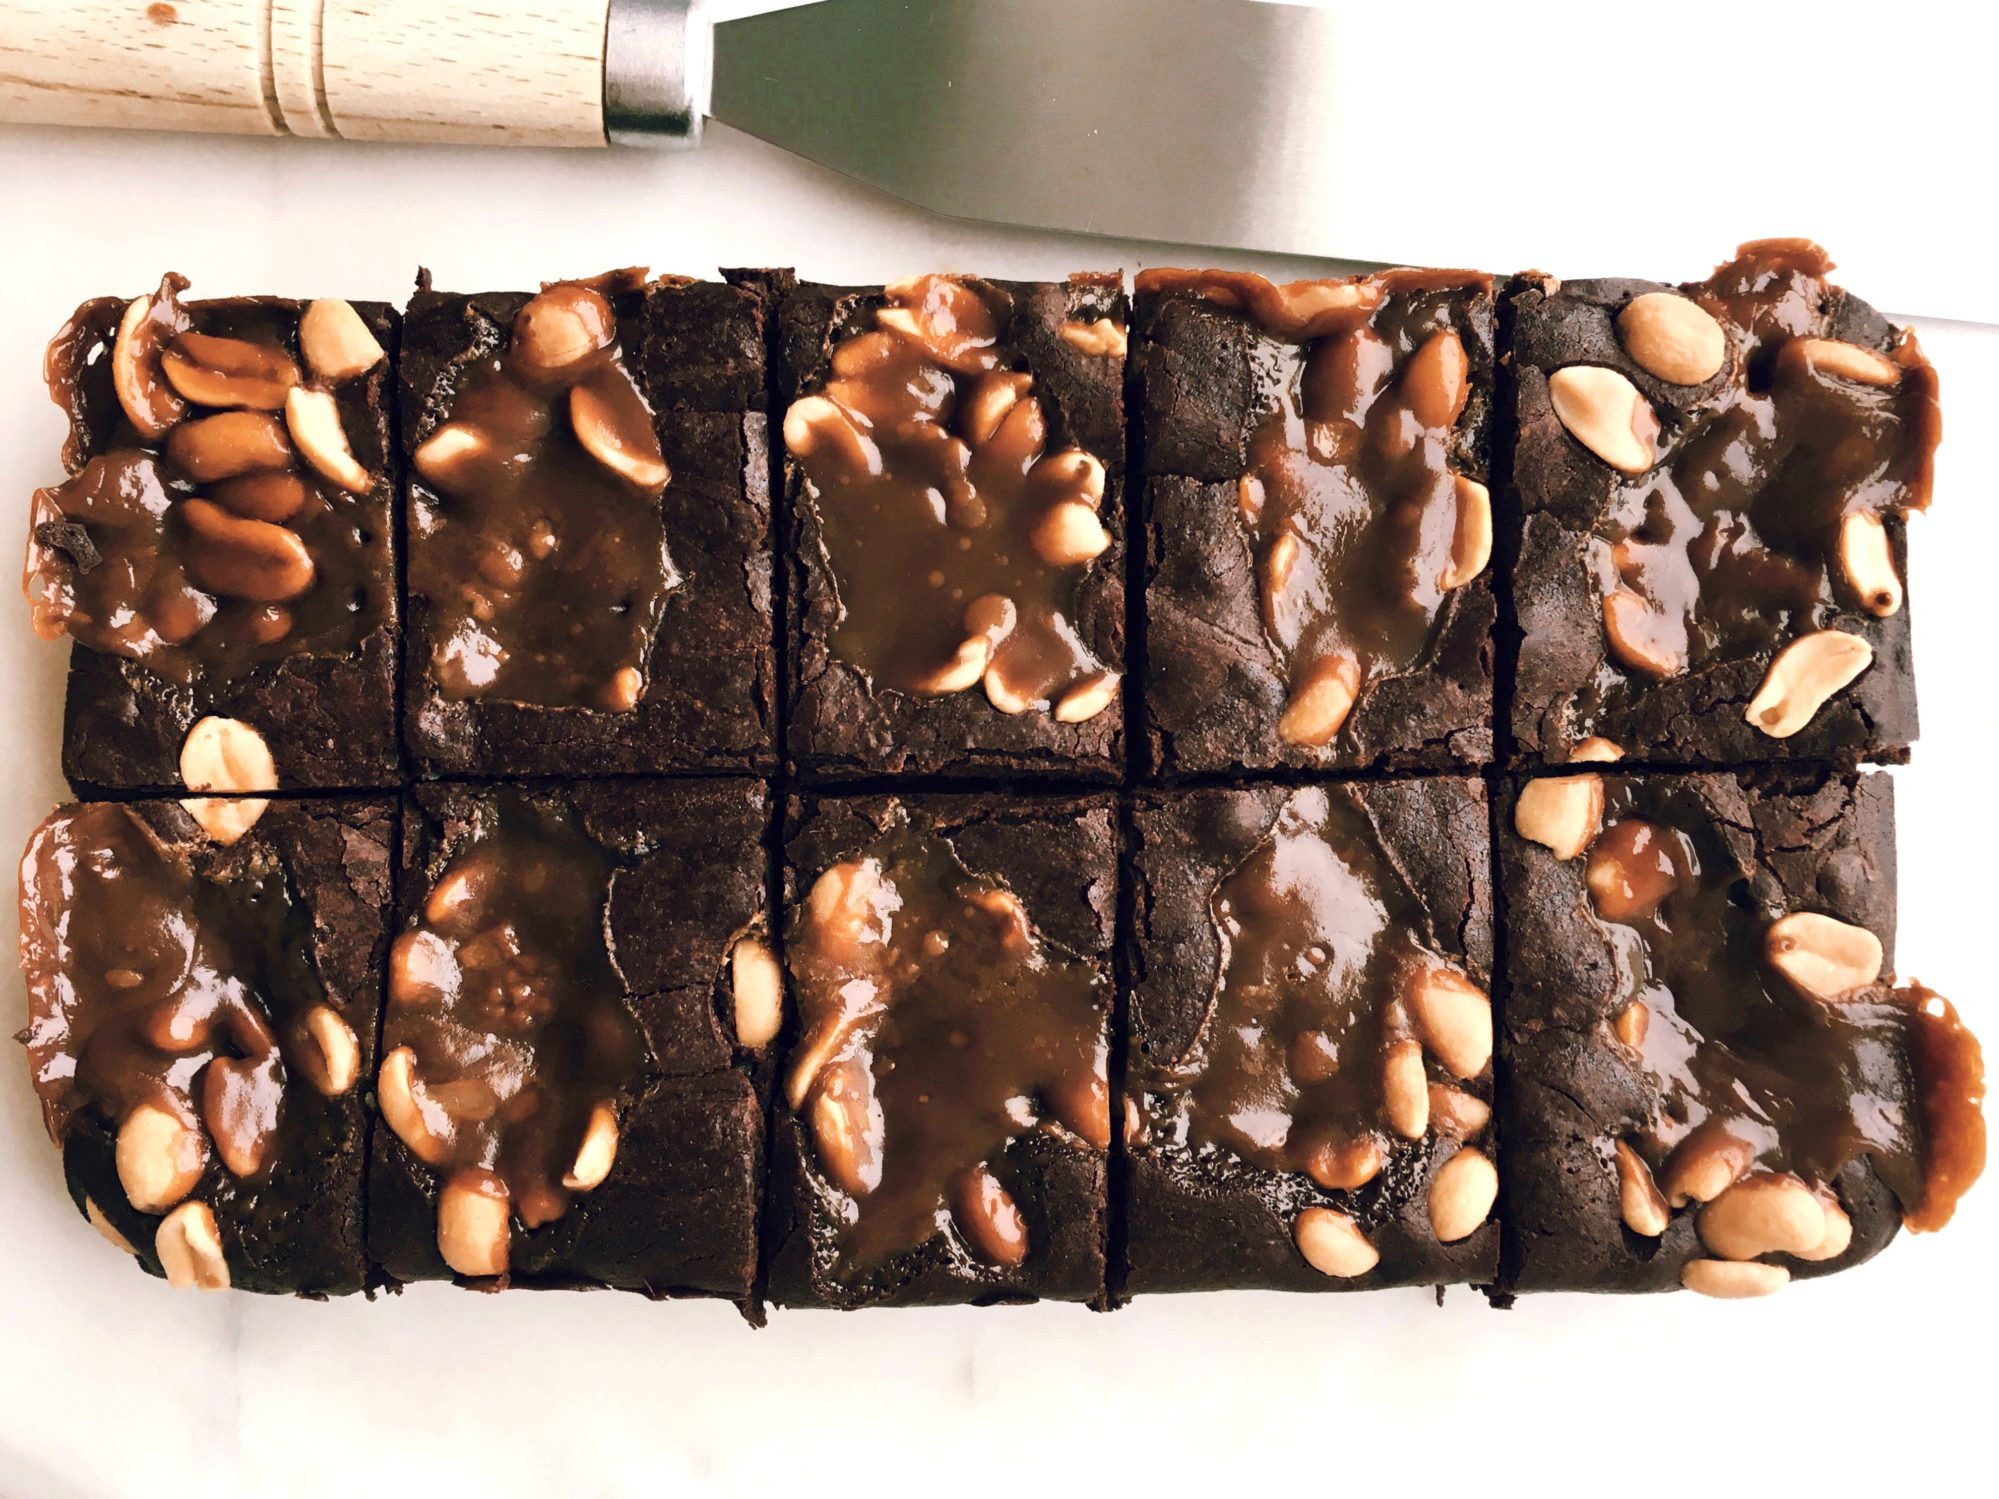 The Salt Roasted Peanut & Butterscotch Brownie – serves 10